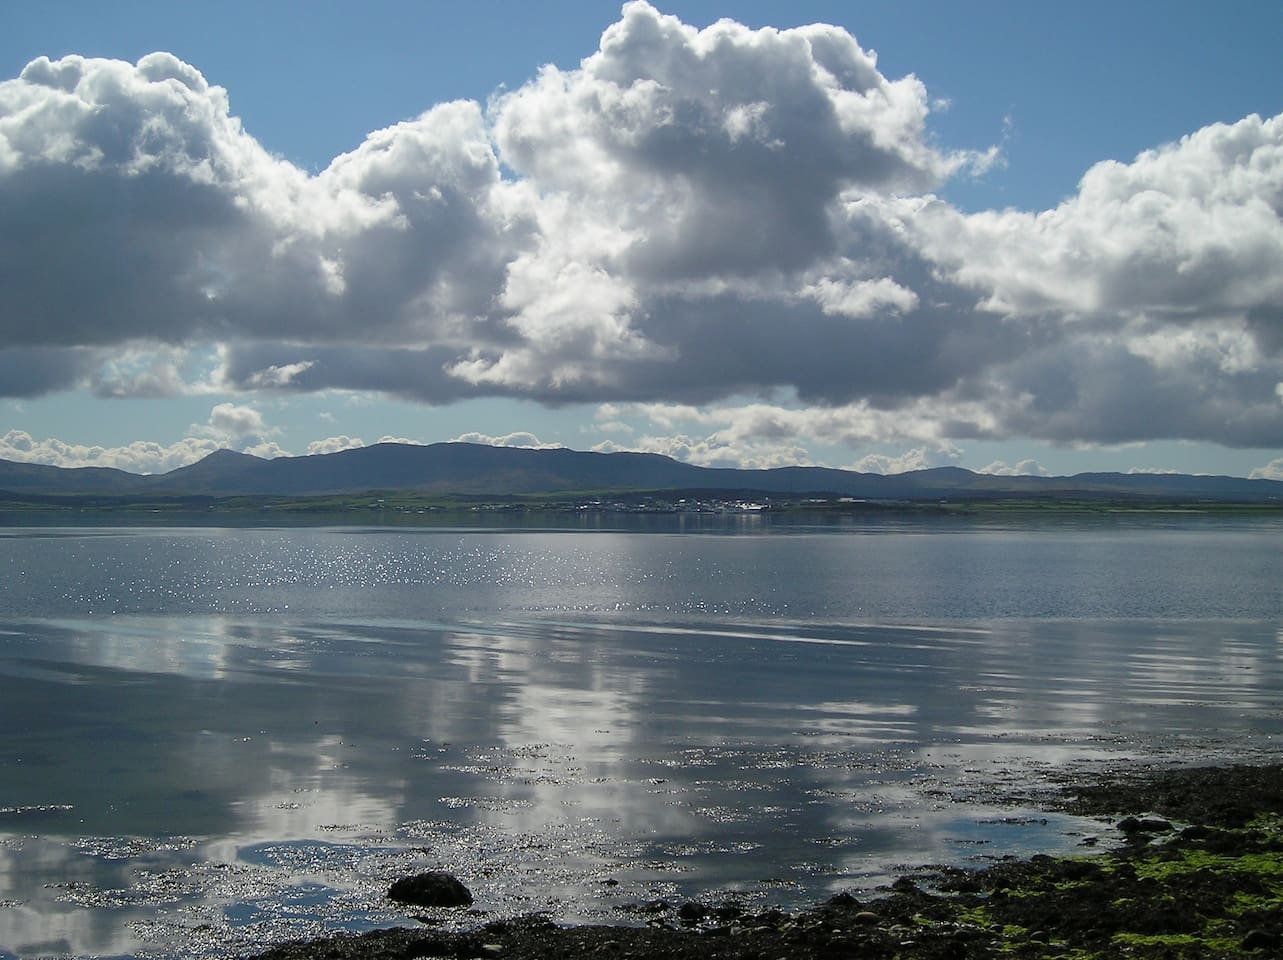 Bowmore across Lochindaal